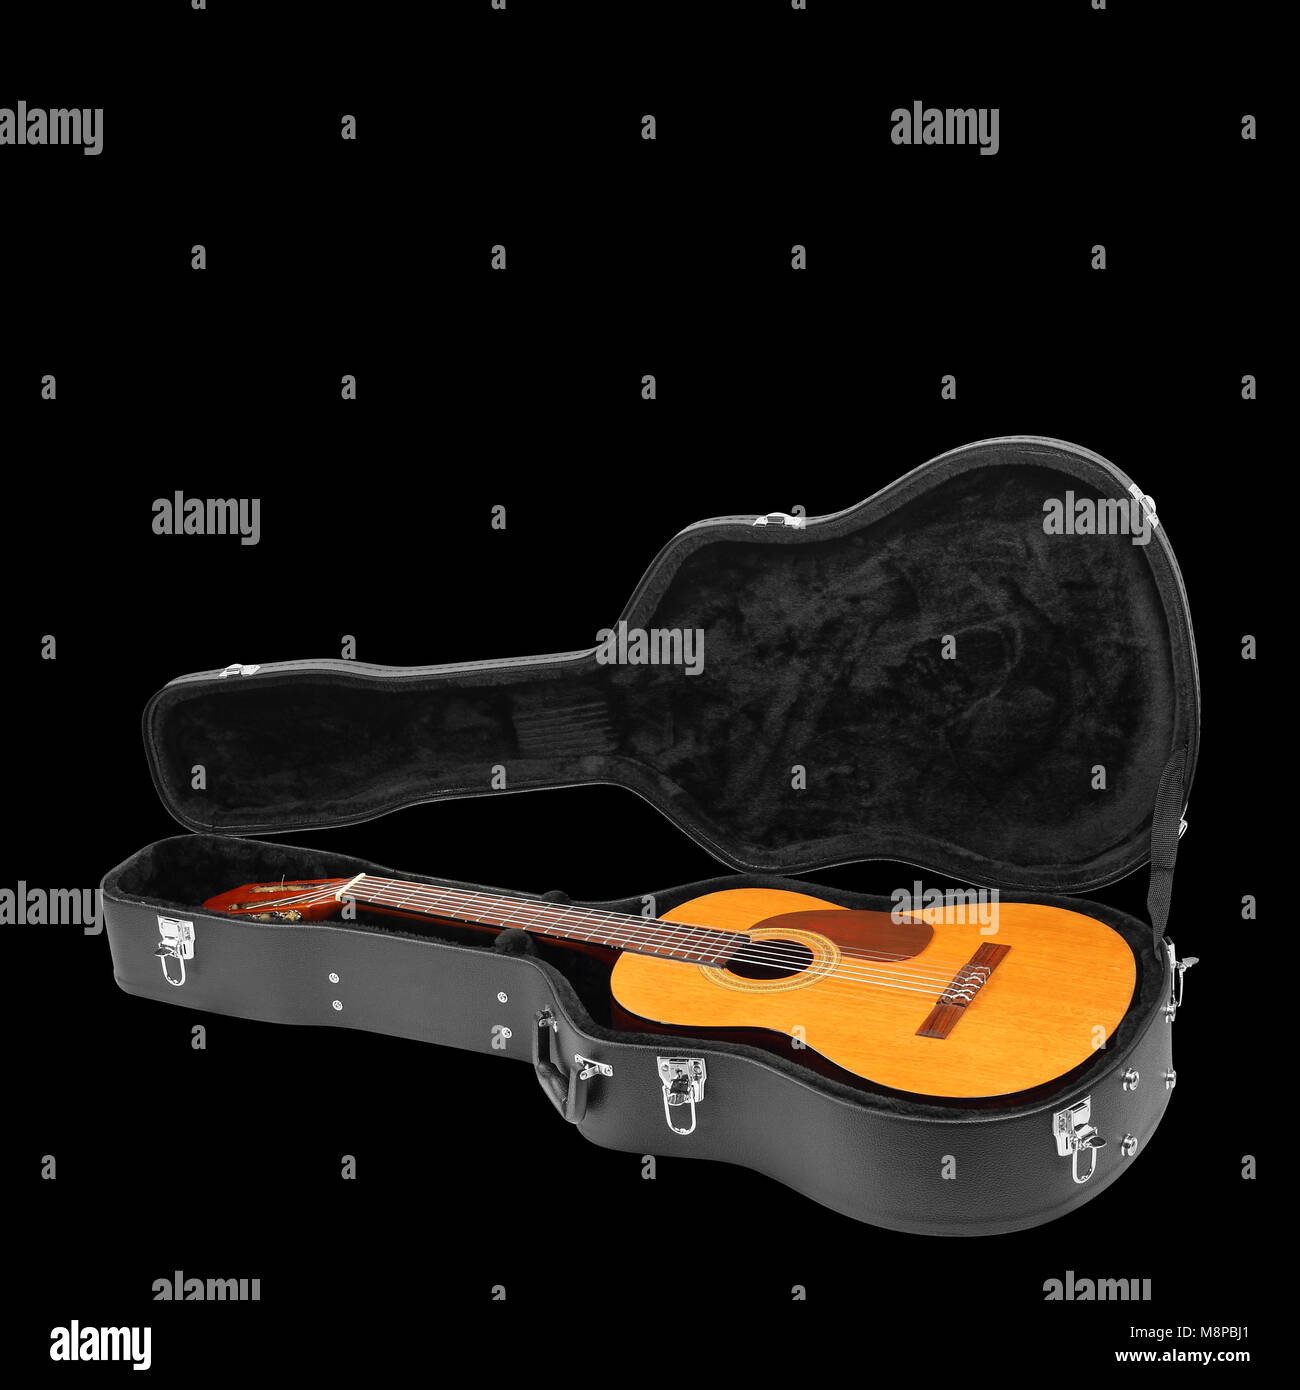 Musical instrument - Classic guitar hard case isolated on a black background. Stock Photo